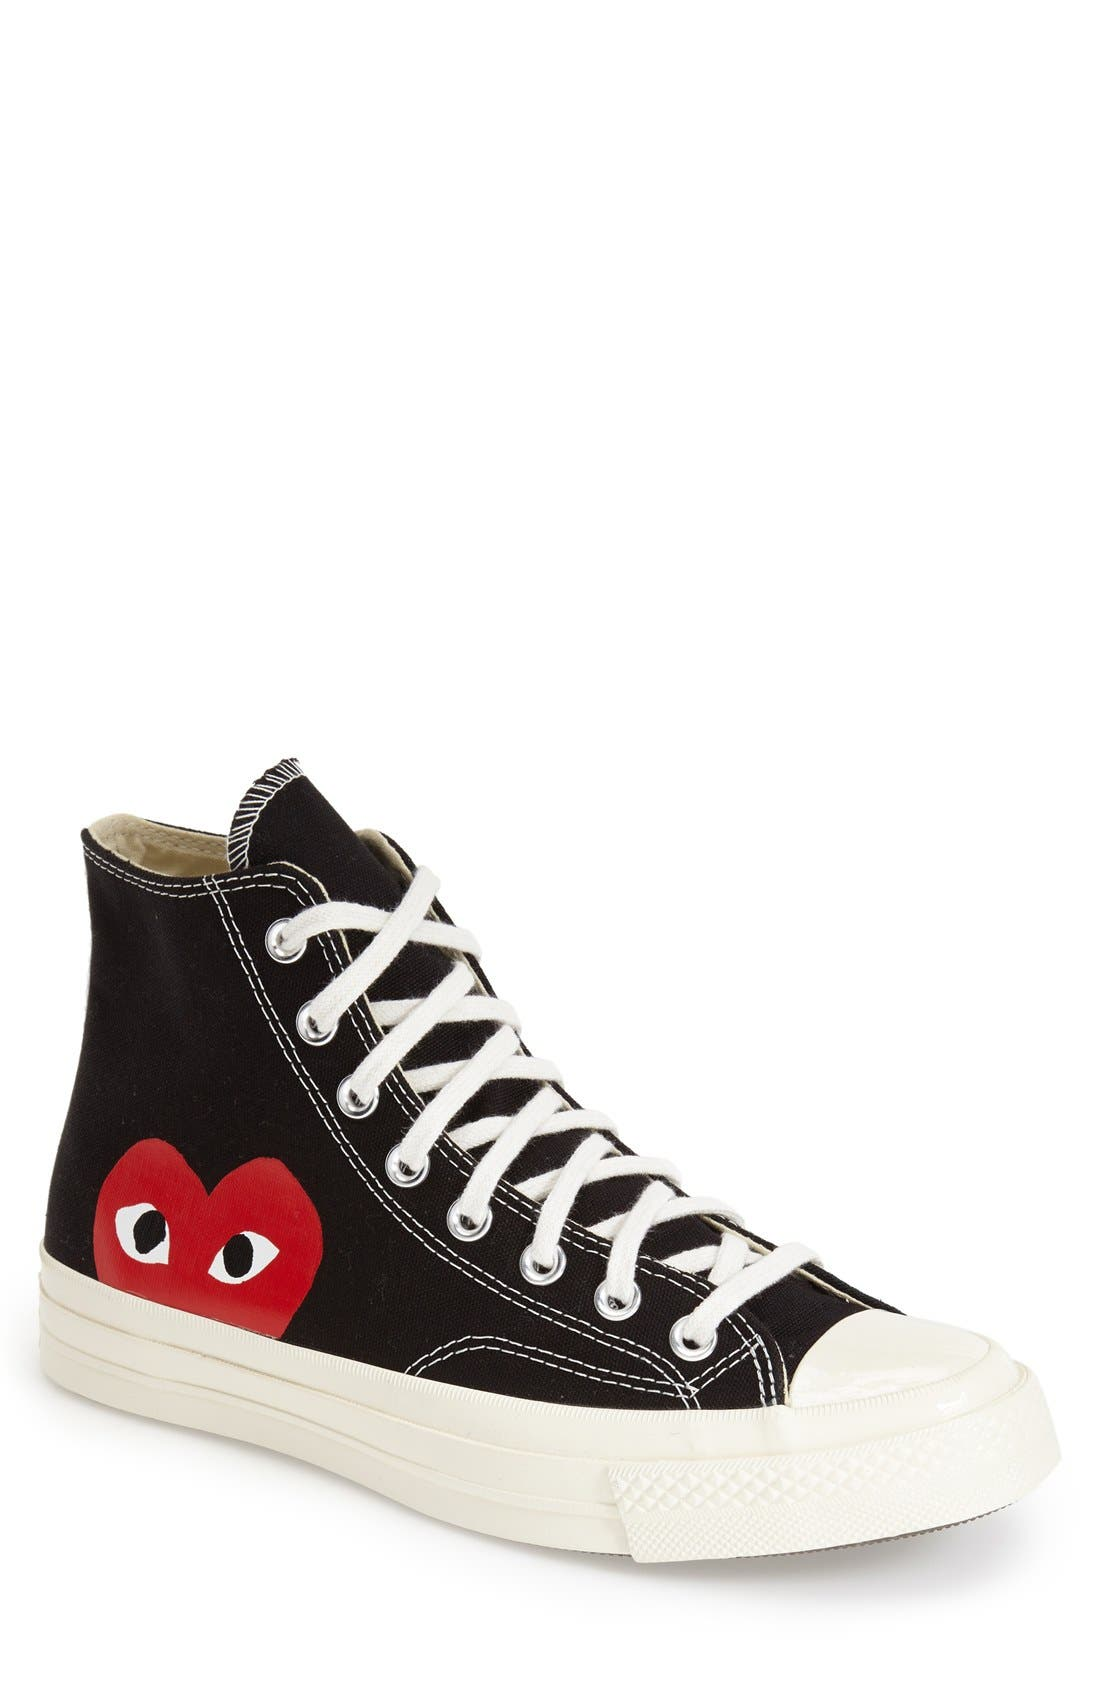 Comme des Garçons PLAY x Converse Chuck Taylor® - 'Hidden Heart' High Top Sneaker (Men)